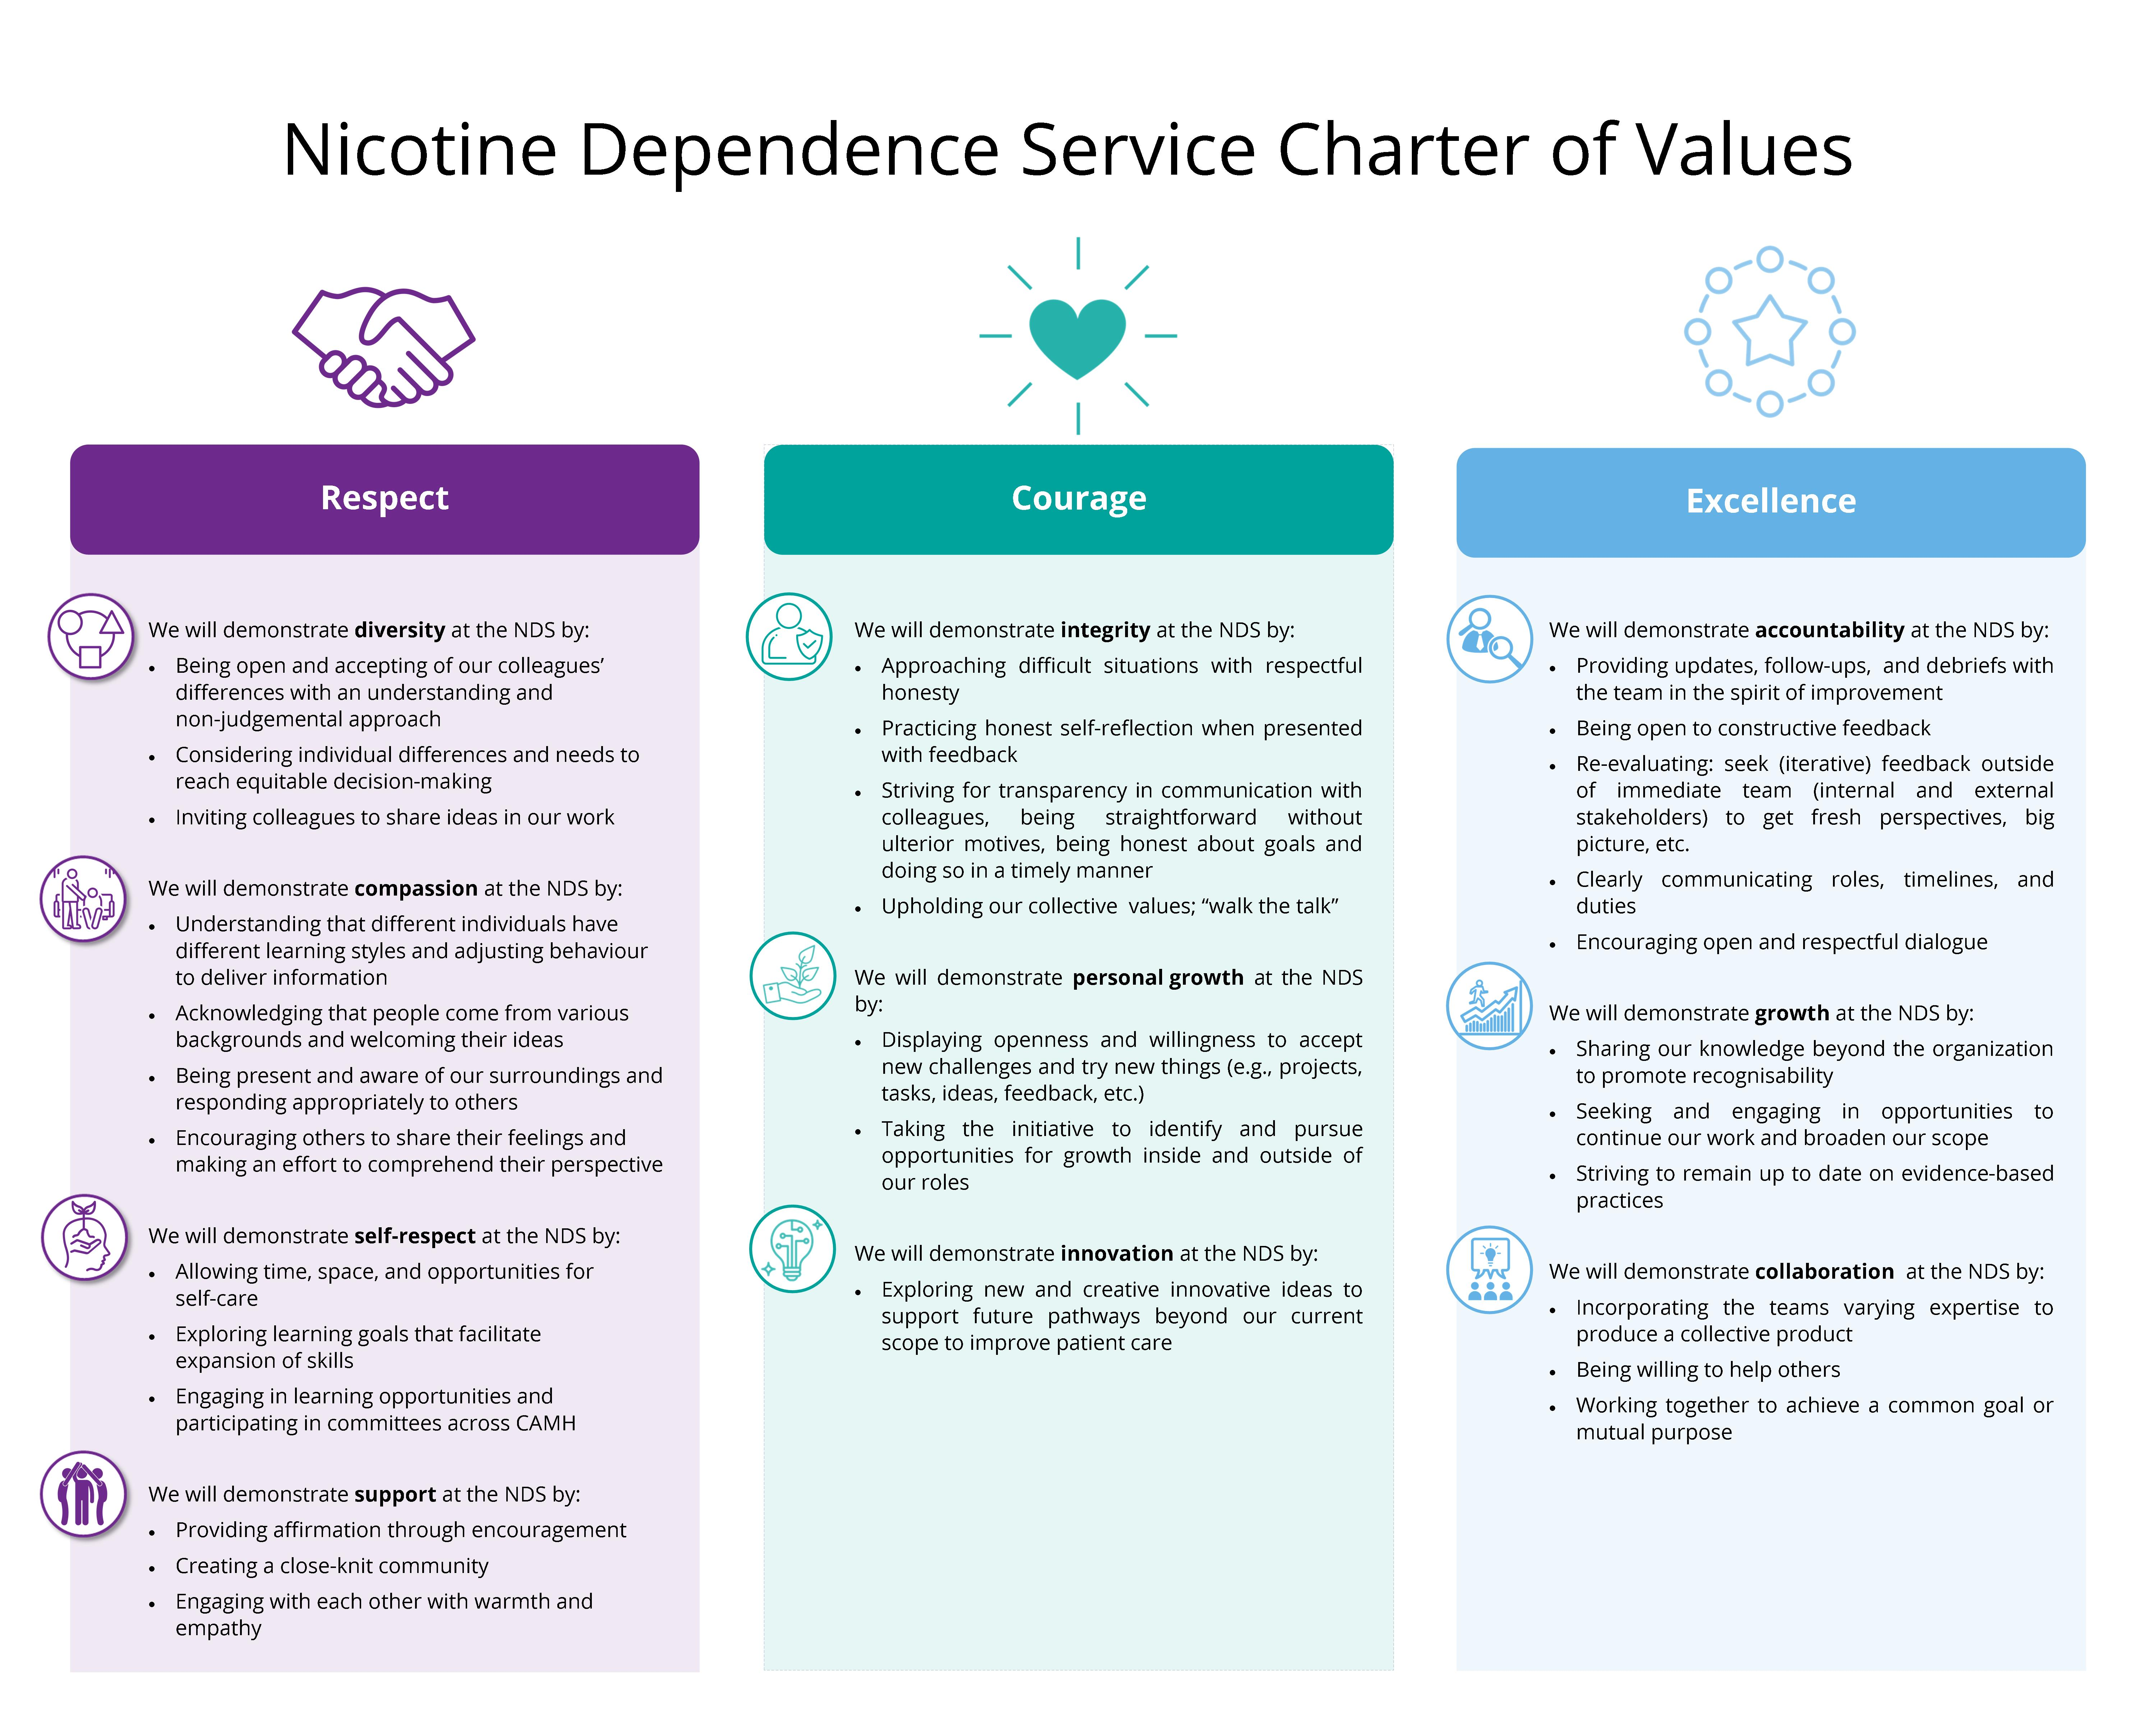 NDS Charter of Values_visual.jpg